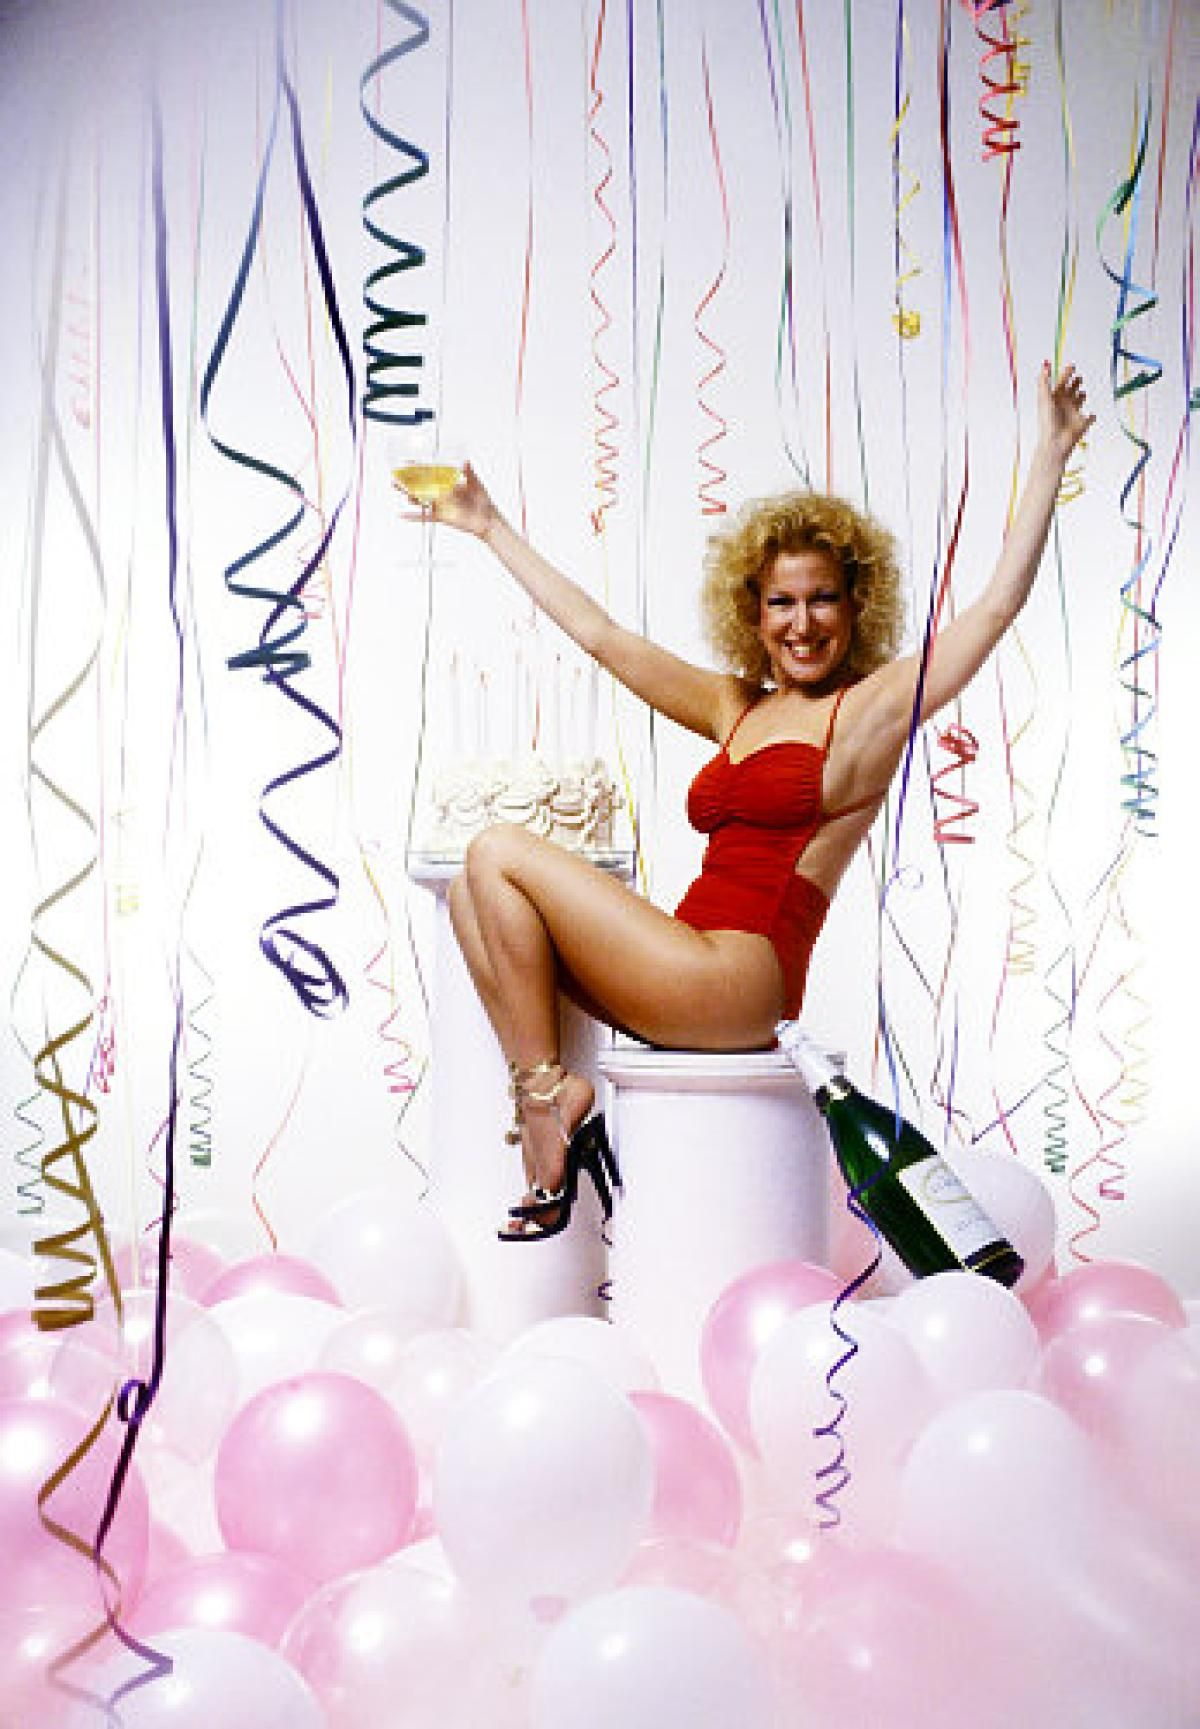 ff6625fb3663e16cef2c2048e609e467 image result for bette midler happy birthday enneagram type 7